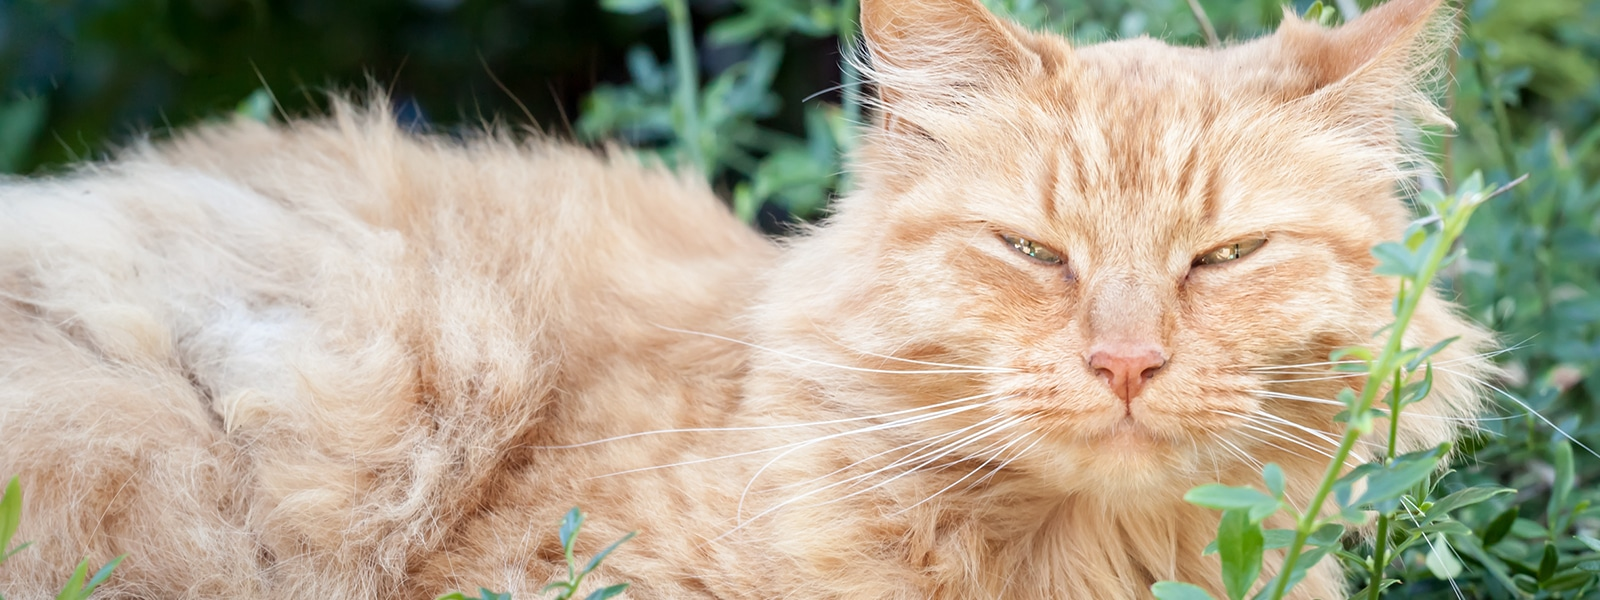 Behavioral Aspects of Caring for Elderly Cats